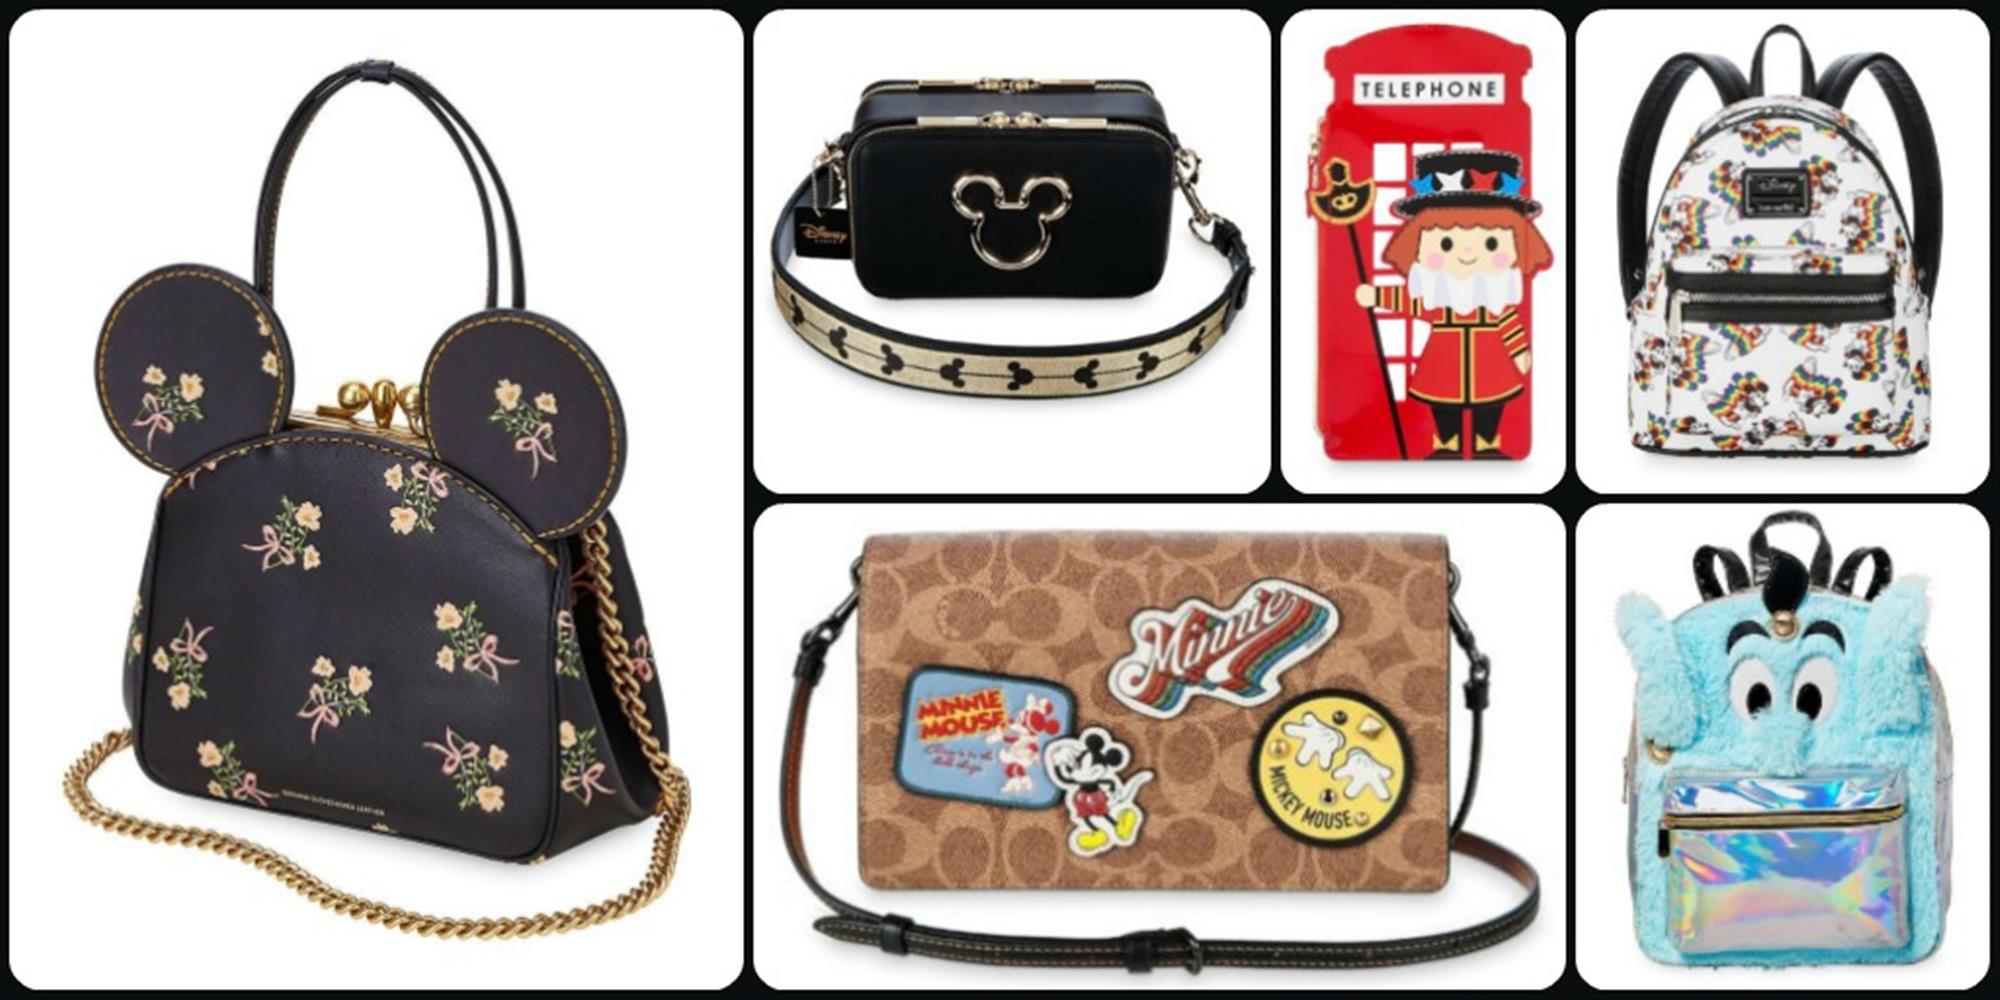 4f7c891c94c Featuring new bags and wallets from COACH